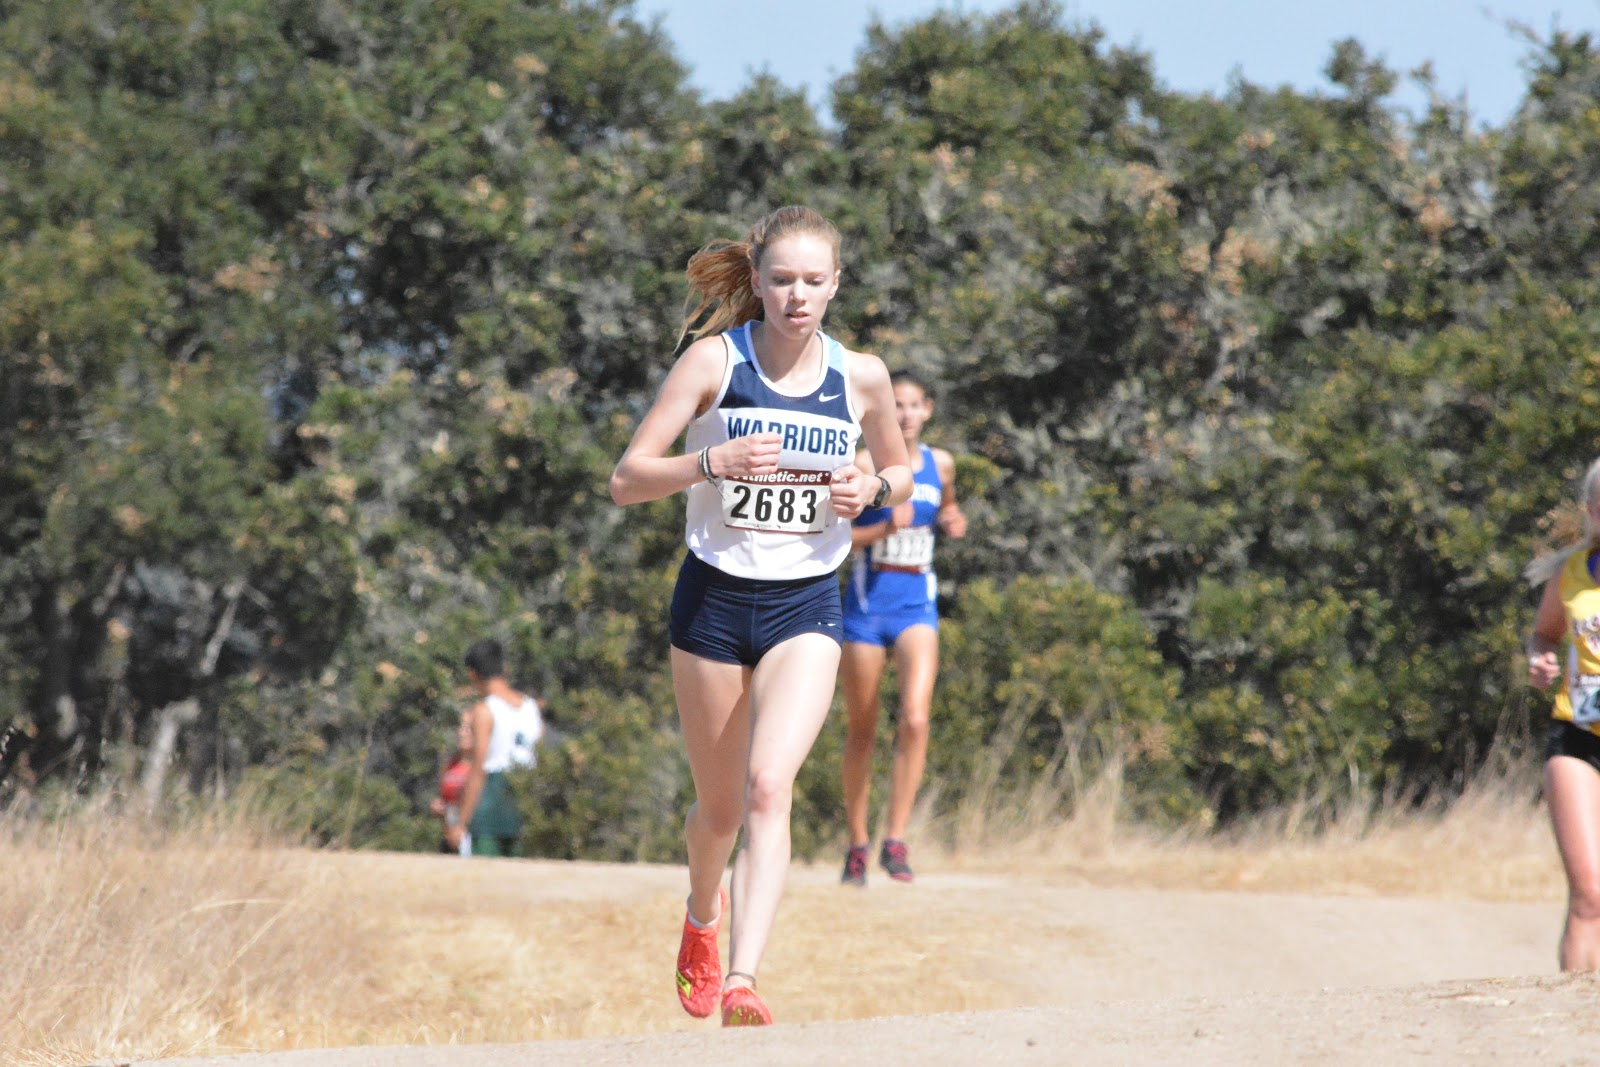 b644a3c762897 Maylene Aguilar continues to be on a steady improvement trajectory running  22 39 in the junior girls race. She ran the third fastest time for the  Warriors ...